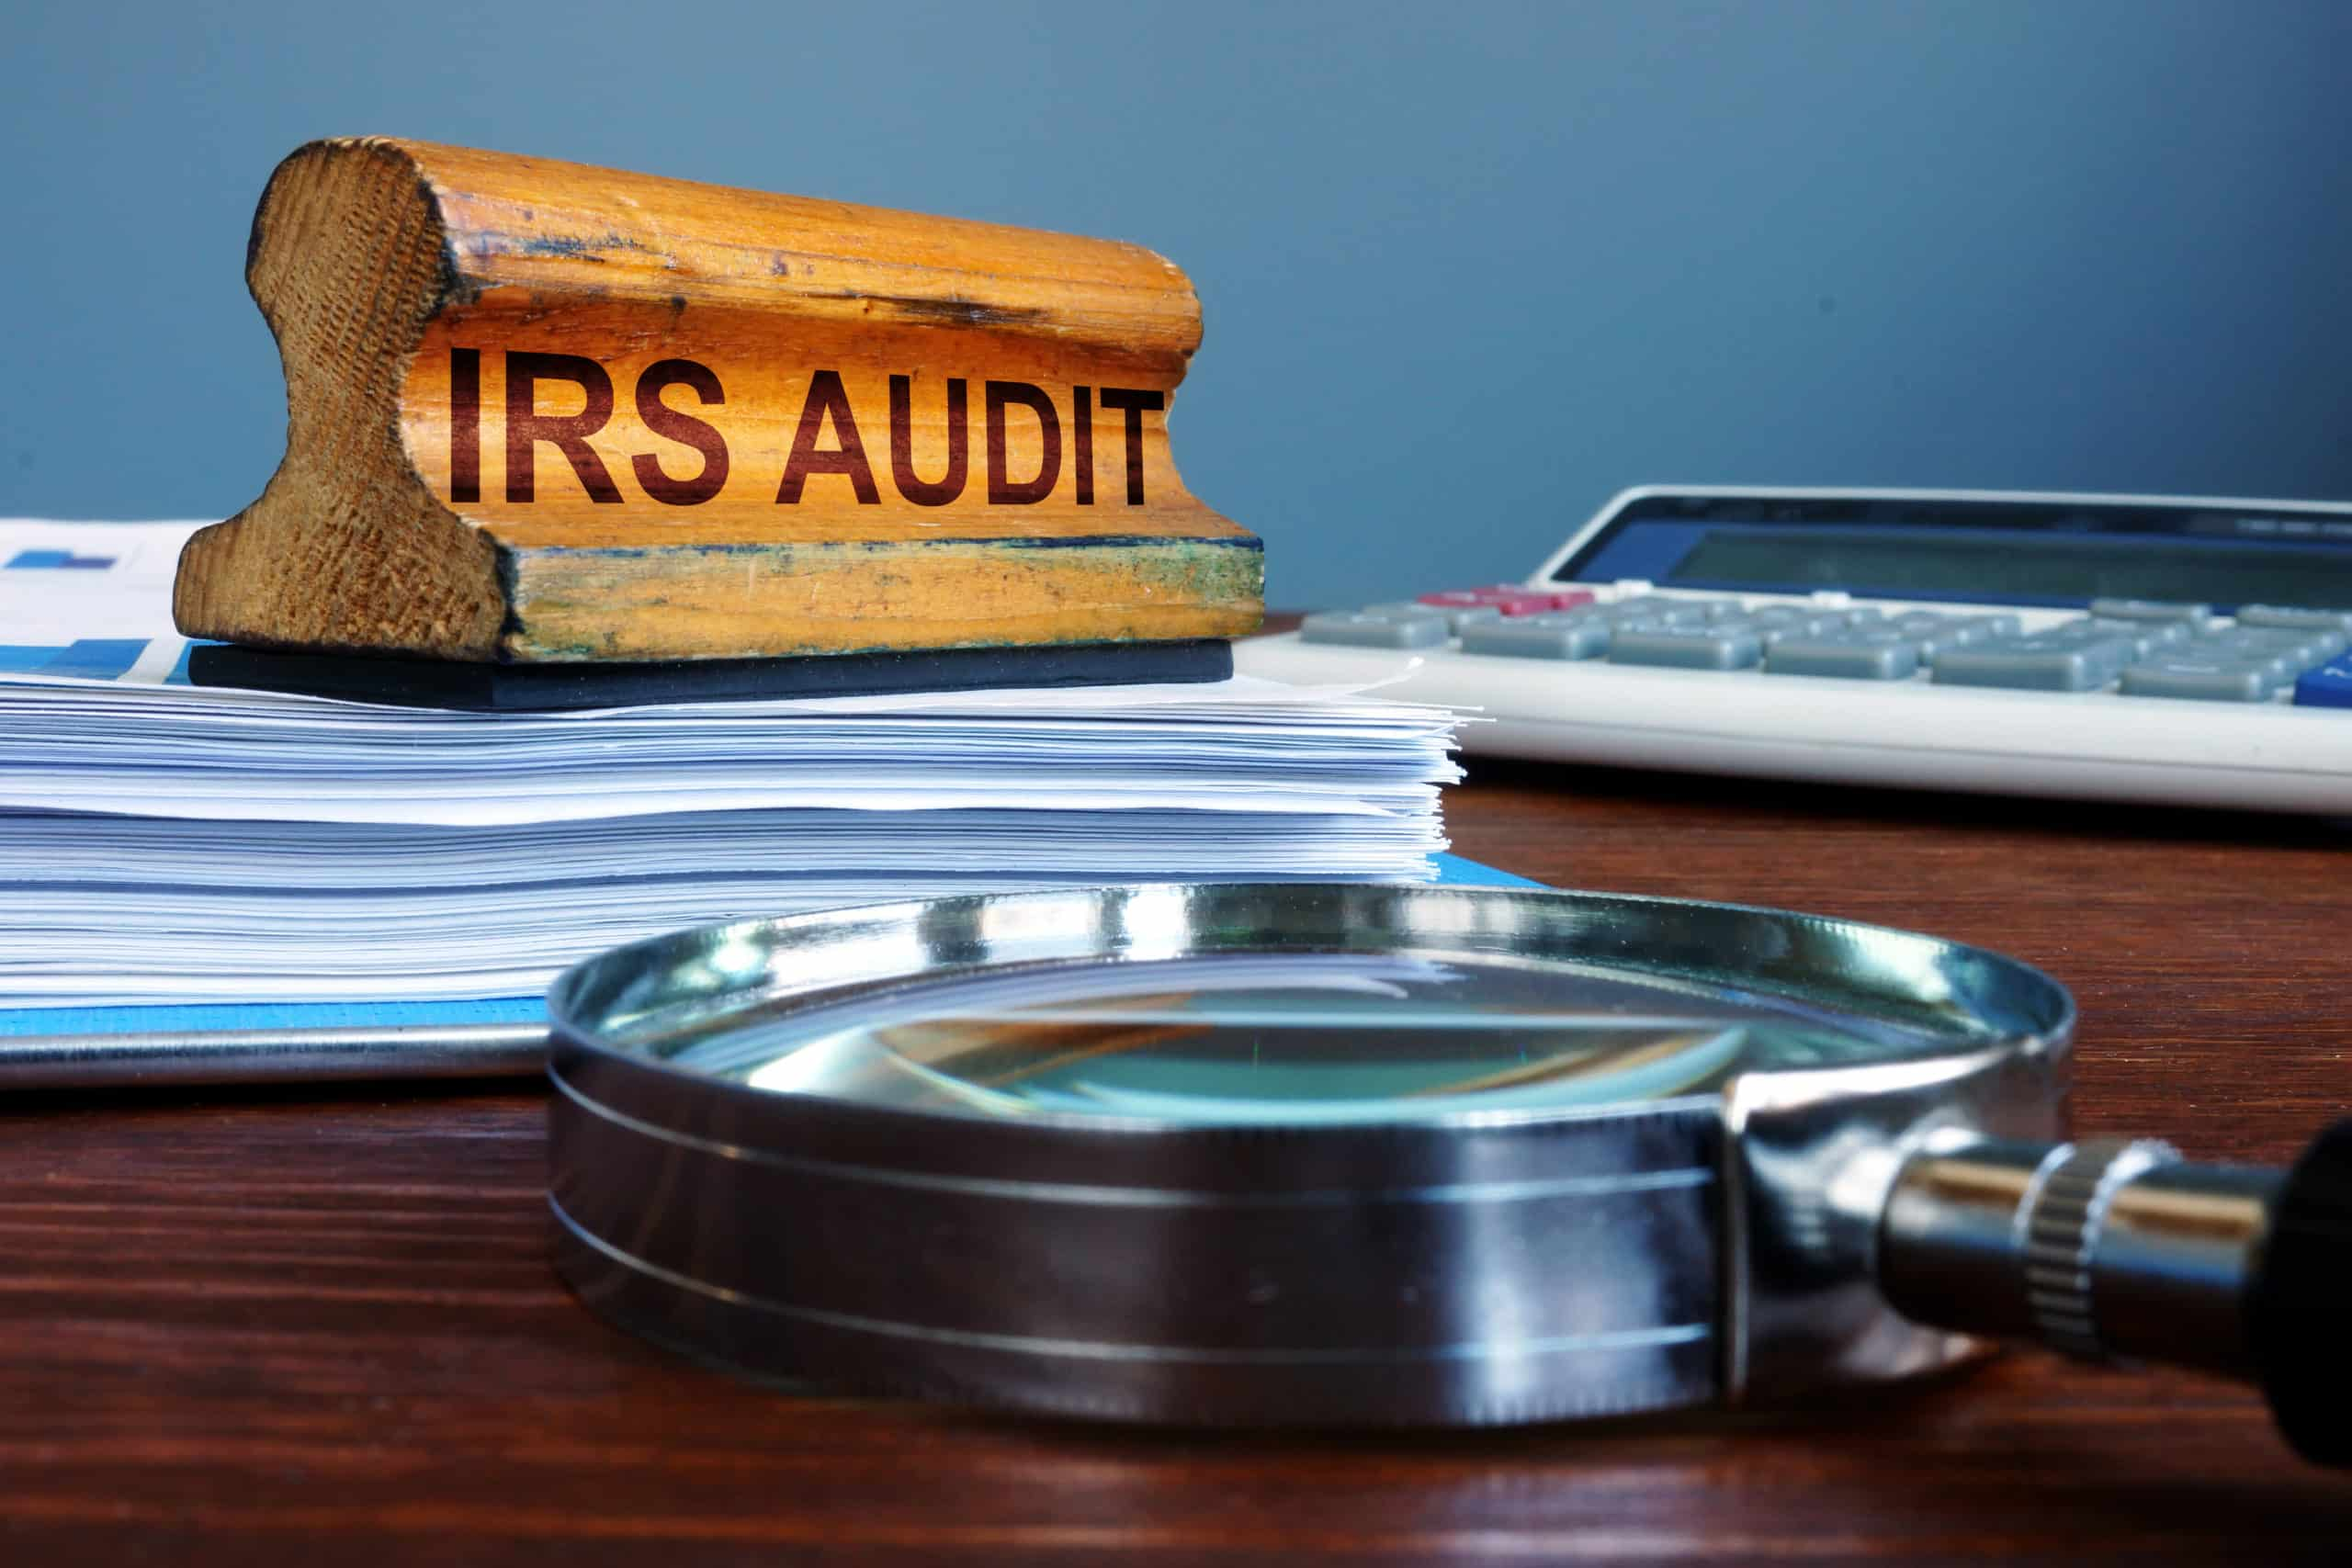 IRS audit stamp and accounting documents for a cannabis business